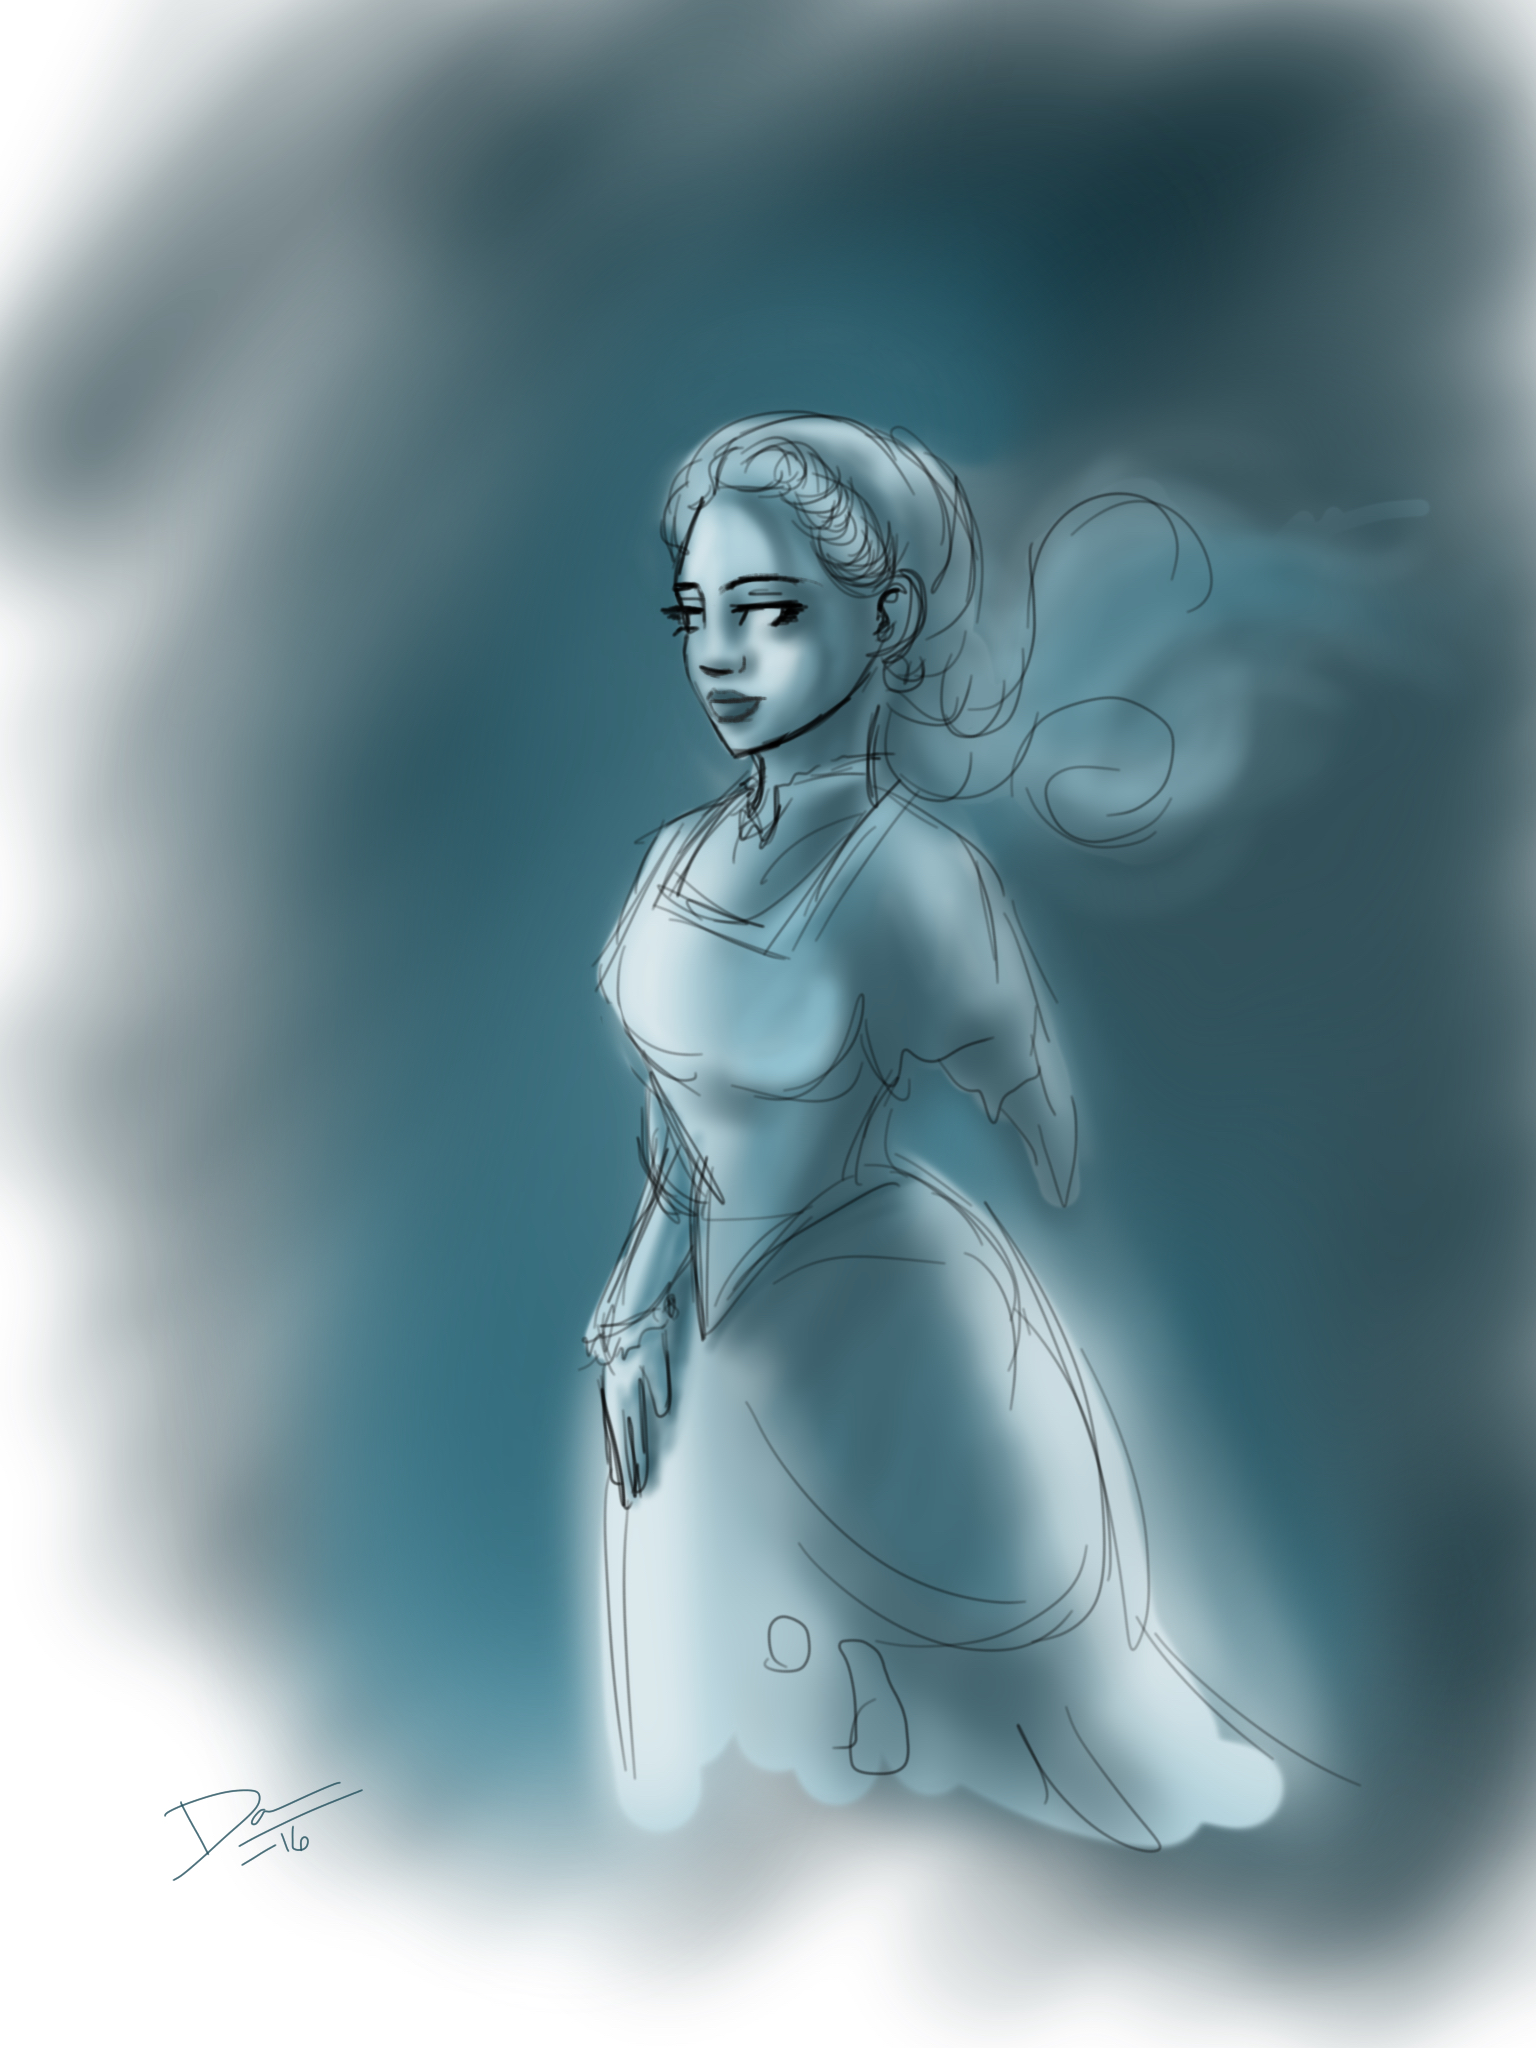 Ghost lady sketch by artofdawn